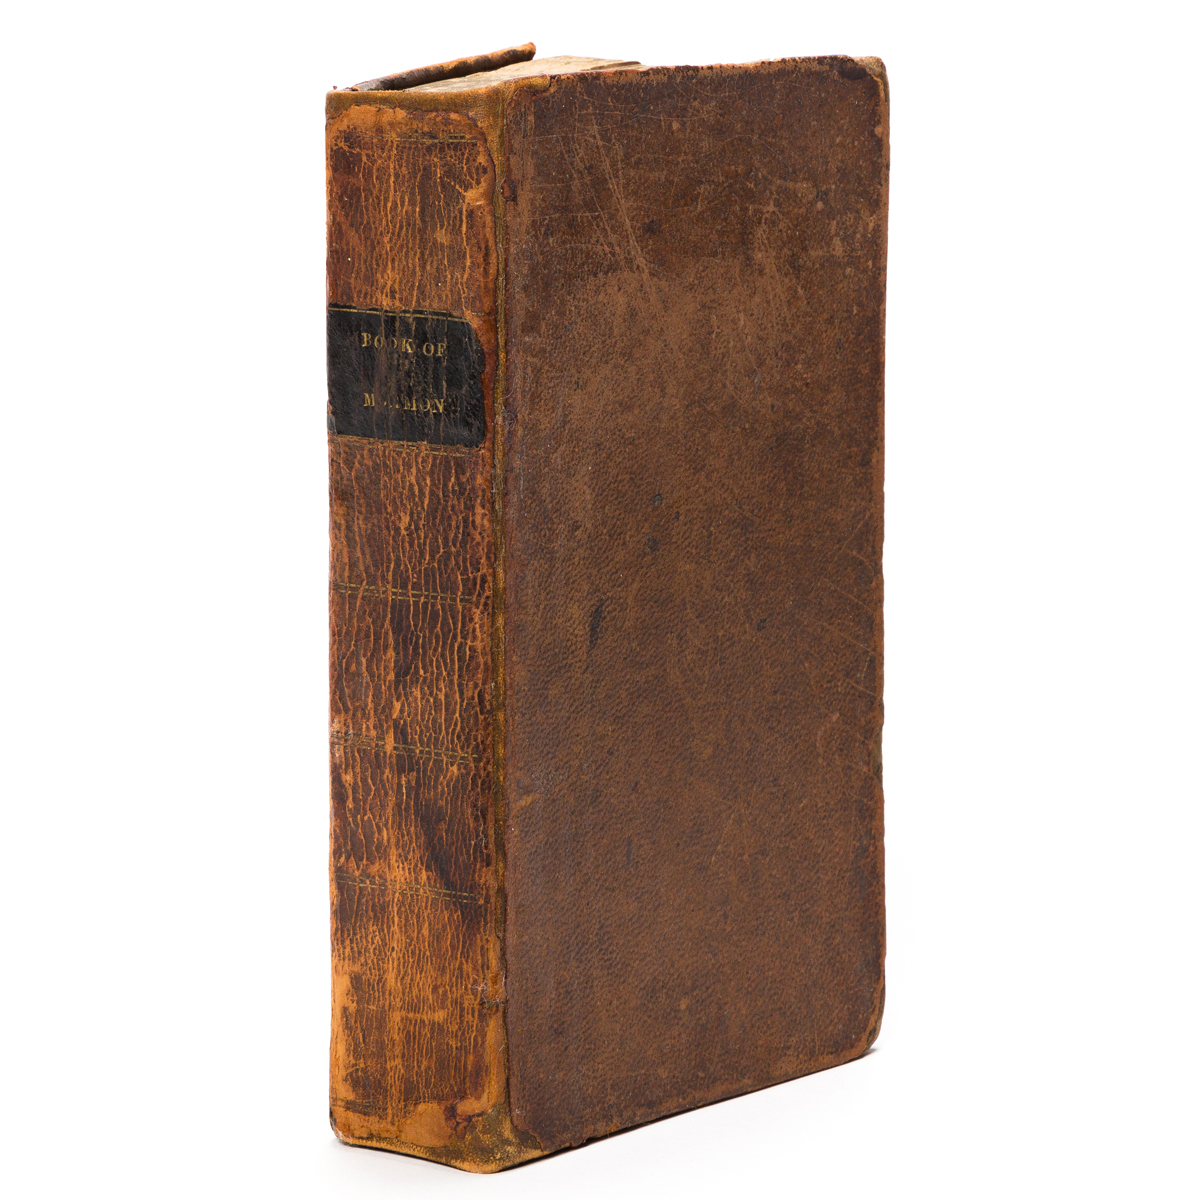 (MORMONS.) The Book of Mormon: An Account Written by the Hand of Mormon, upon Plates Taken from the Plates of Nephi.